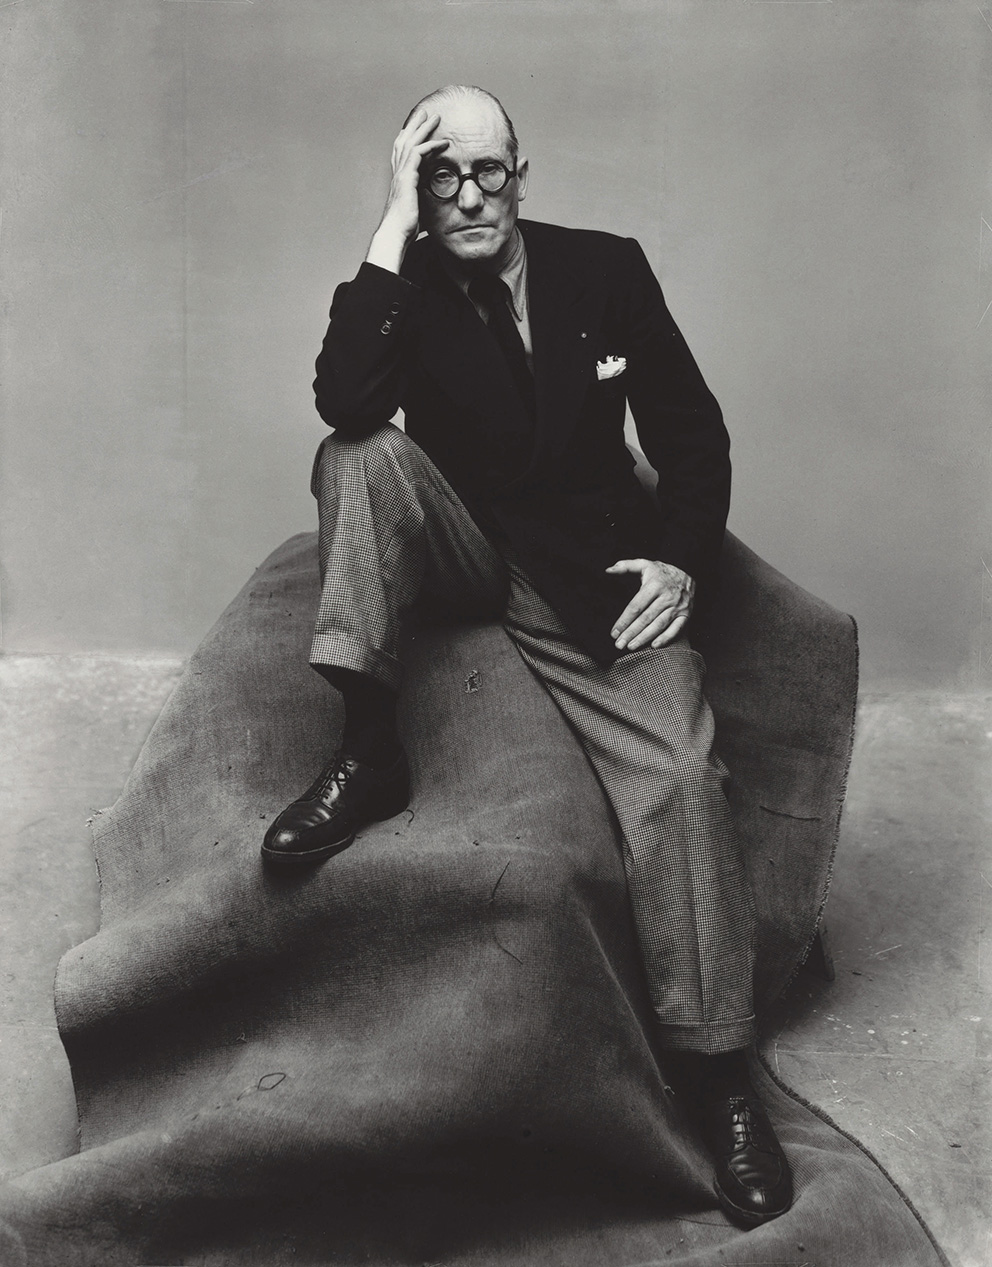 Irving Penn (1917-2009), Le Corbusier (1 of 2), New York, 1947, tirage gélatino-argentique, 1983. © The Irving Penn Foundation – Partial g